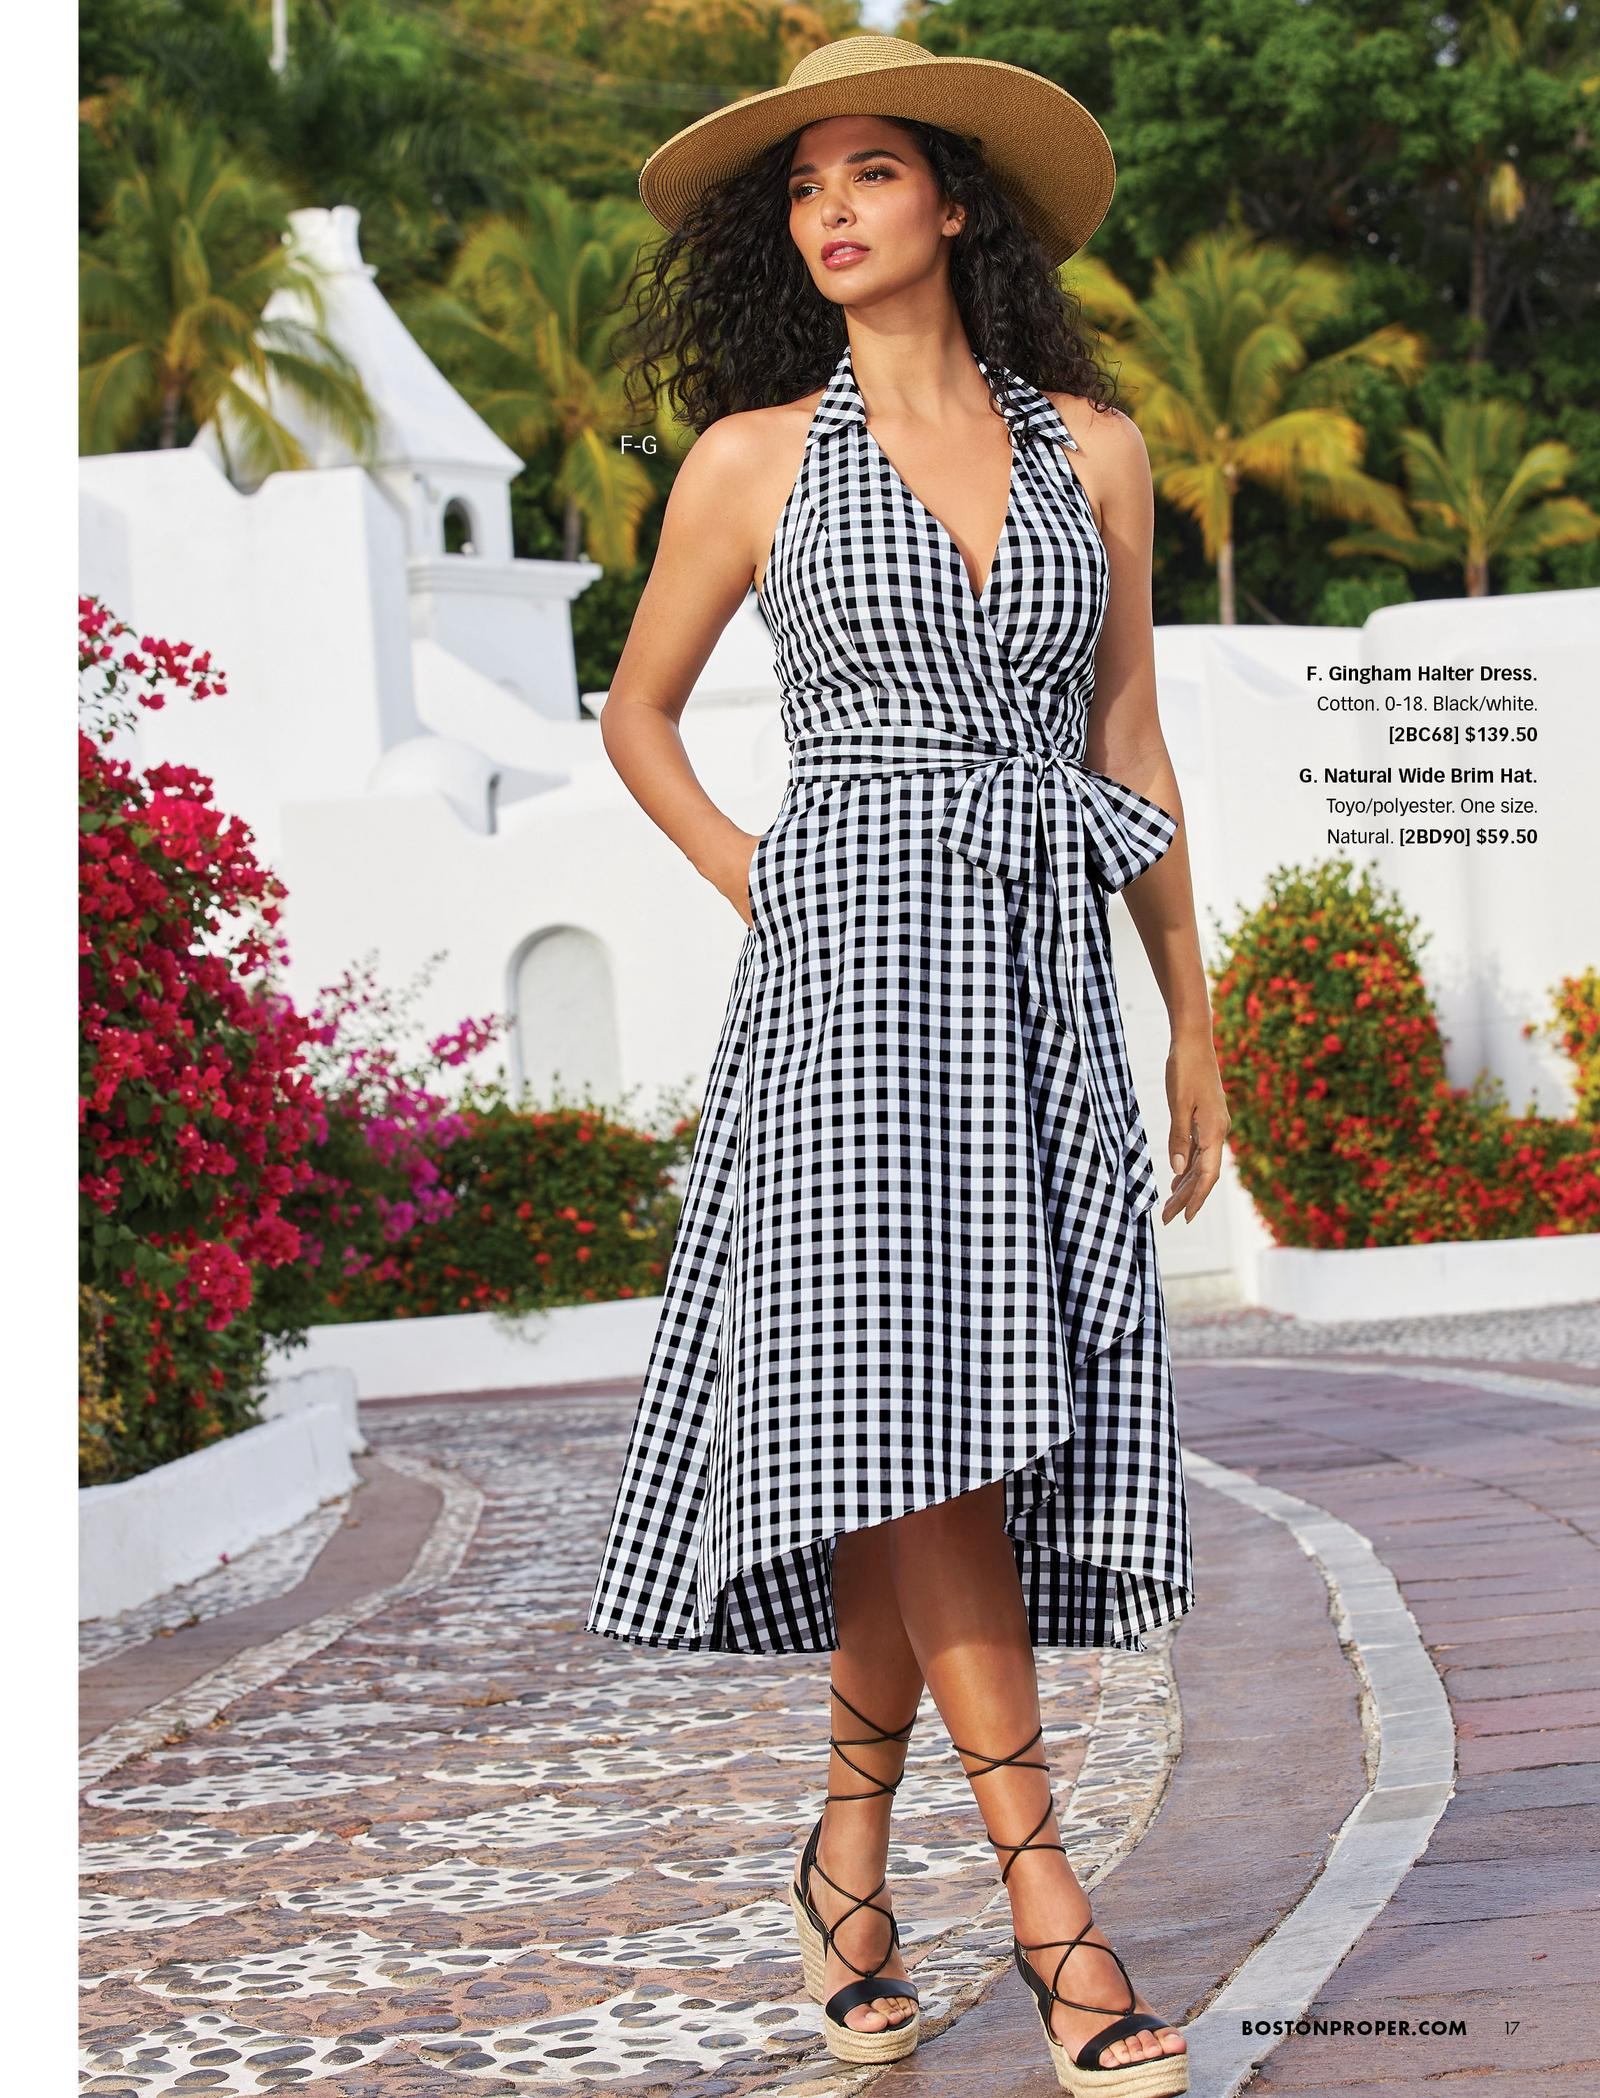 model wearing a black and white gingham halter midi dress, straw hat, and black strappy heels.